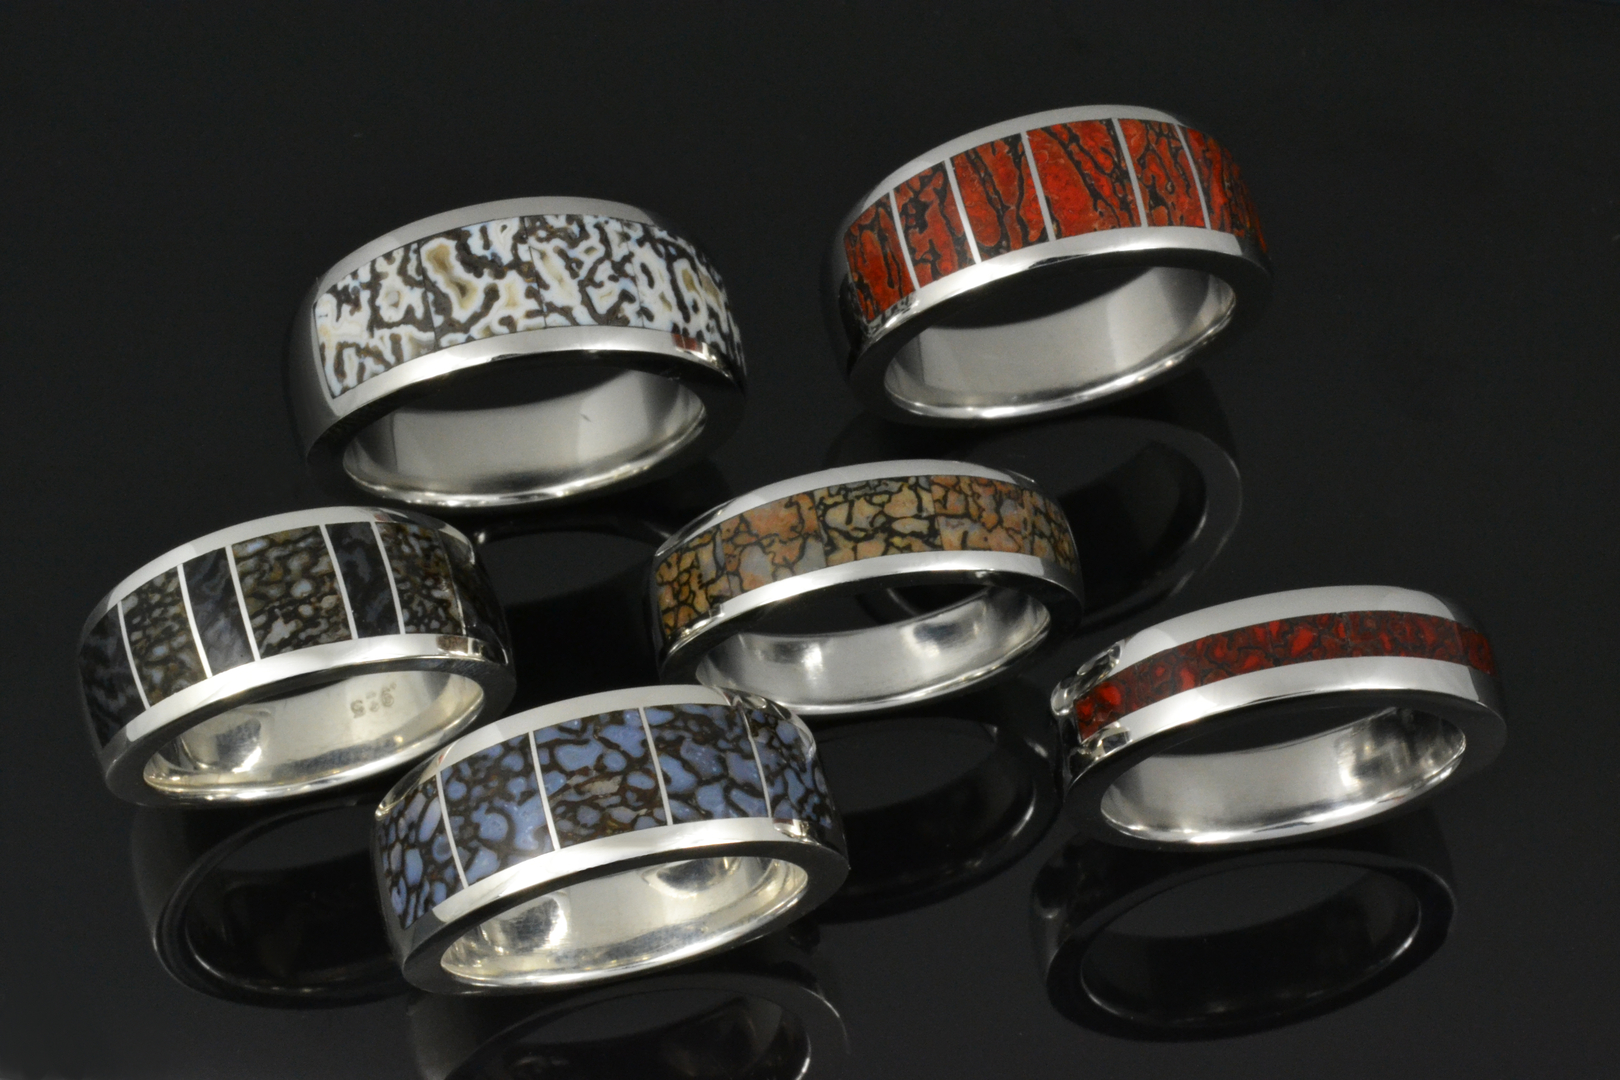 meteorite titanium hawaiian inlay gibeon carbide tungsten koa and wood with bone dinosaur wedding mwb at mm rings